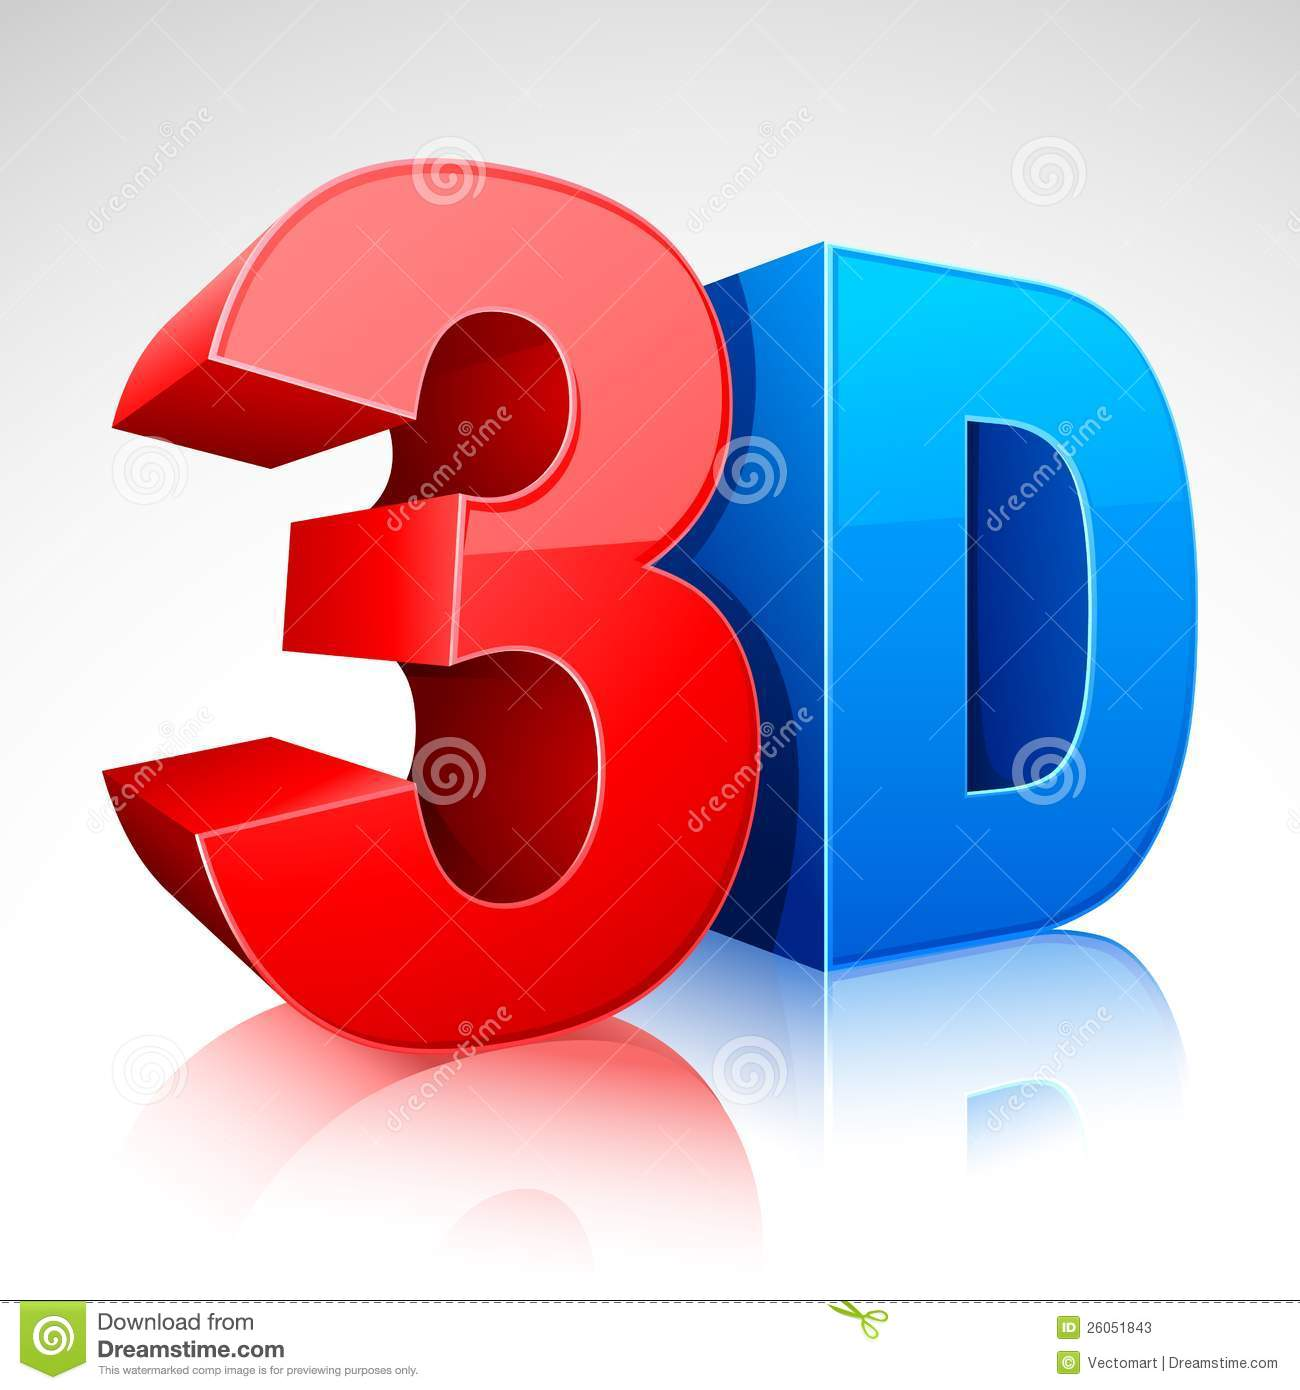 3d word symbol stock photos image 26051843